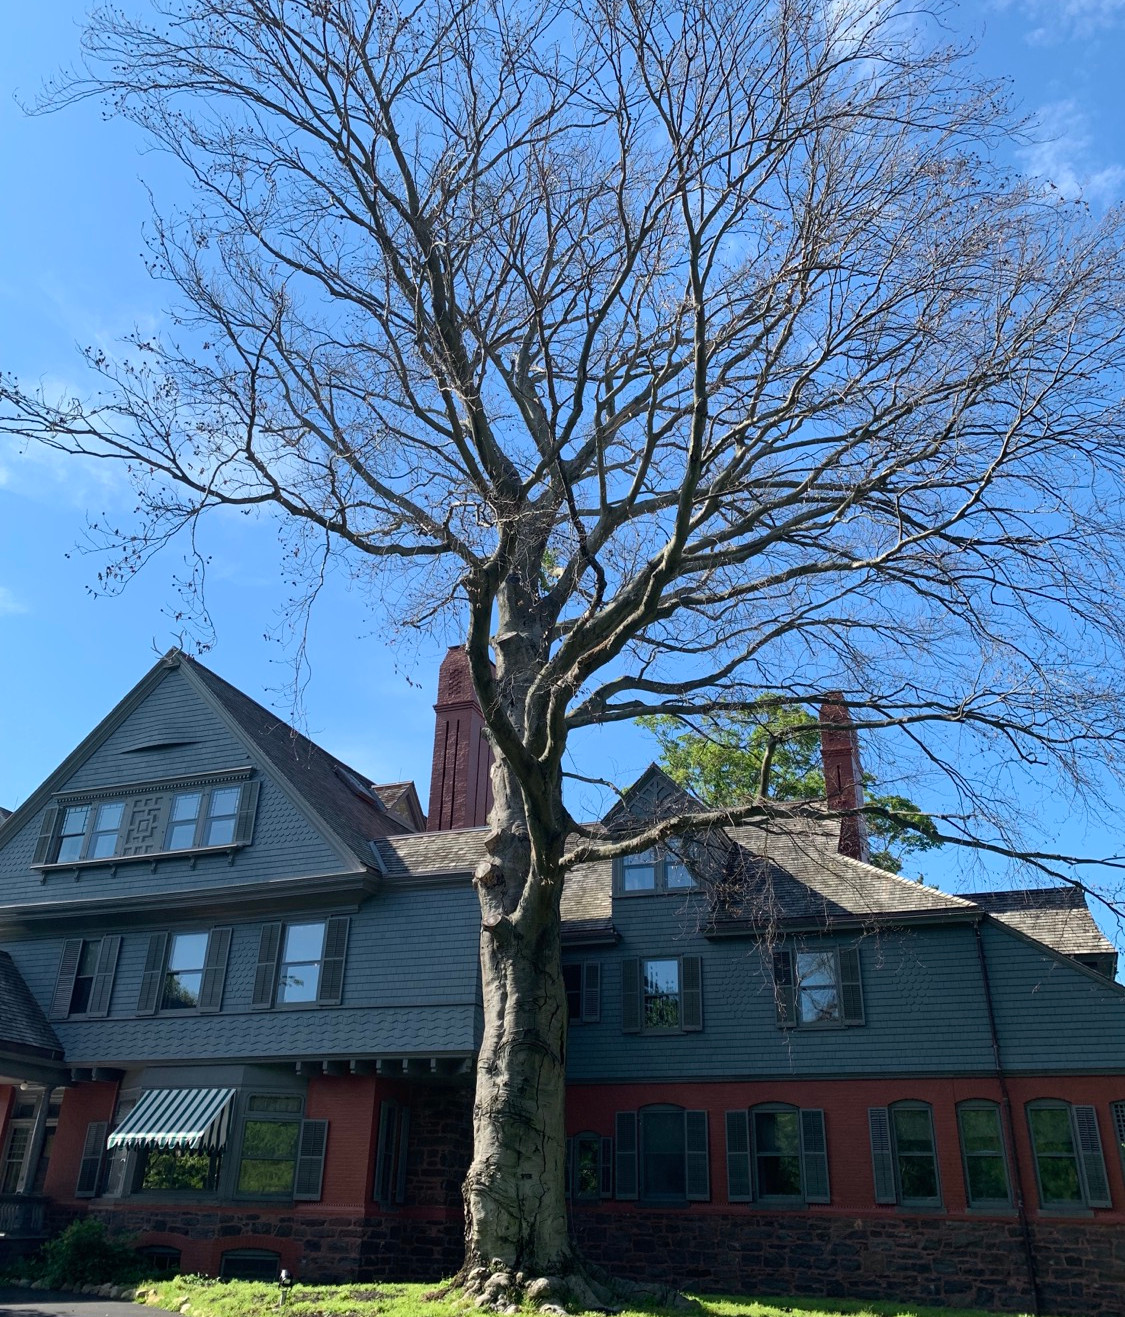 The tree planted by Teddy in 1898, which will be removed this year, due to its death.